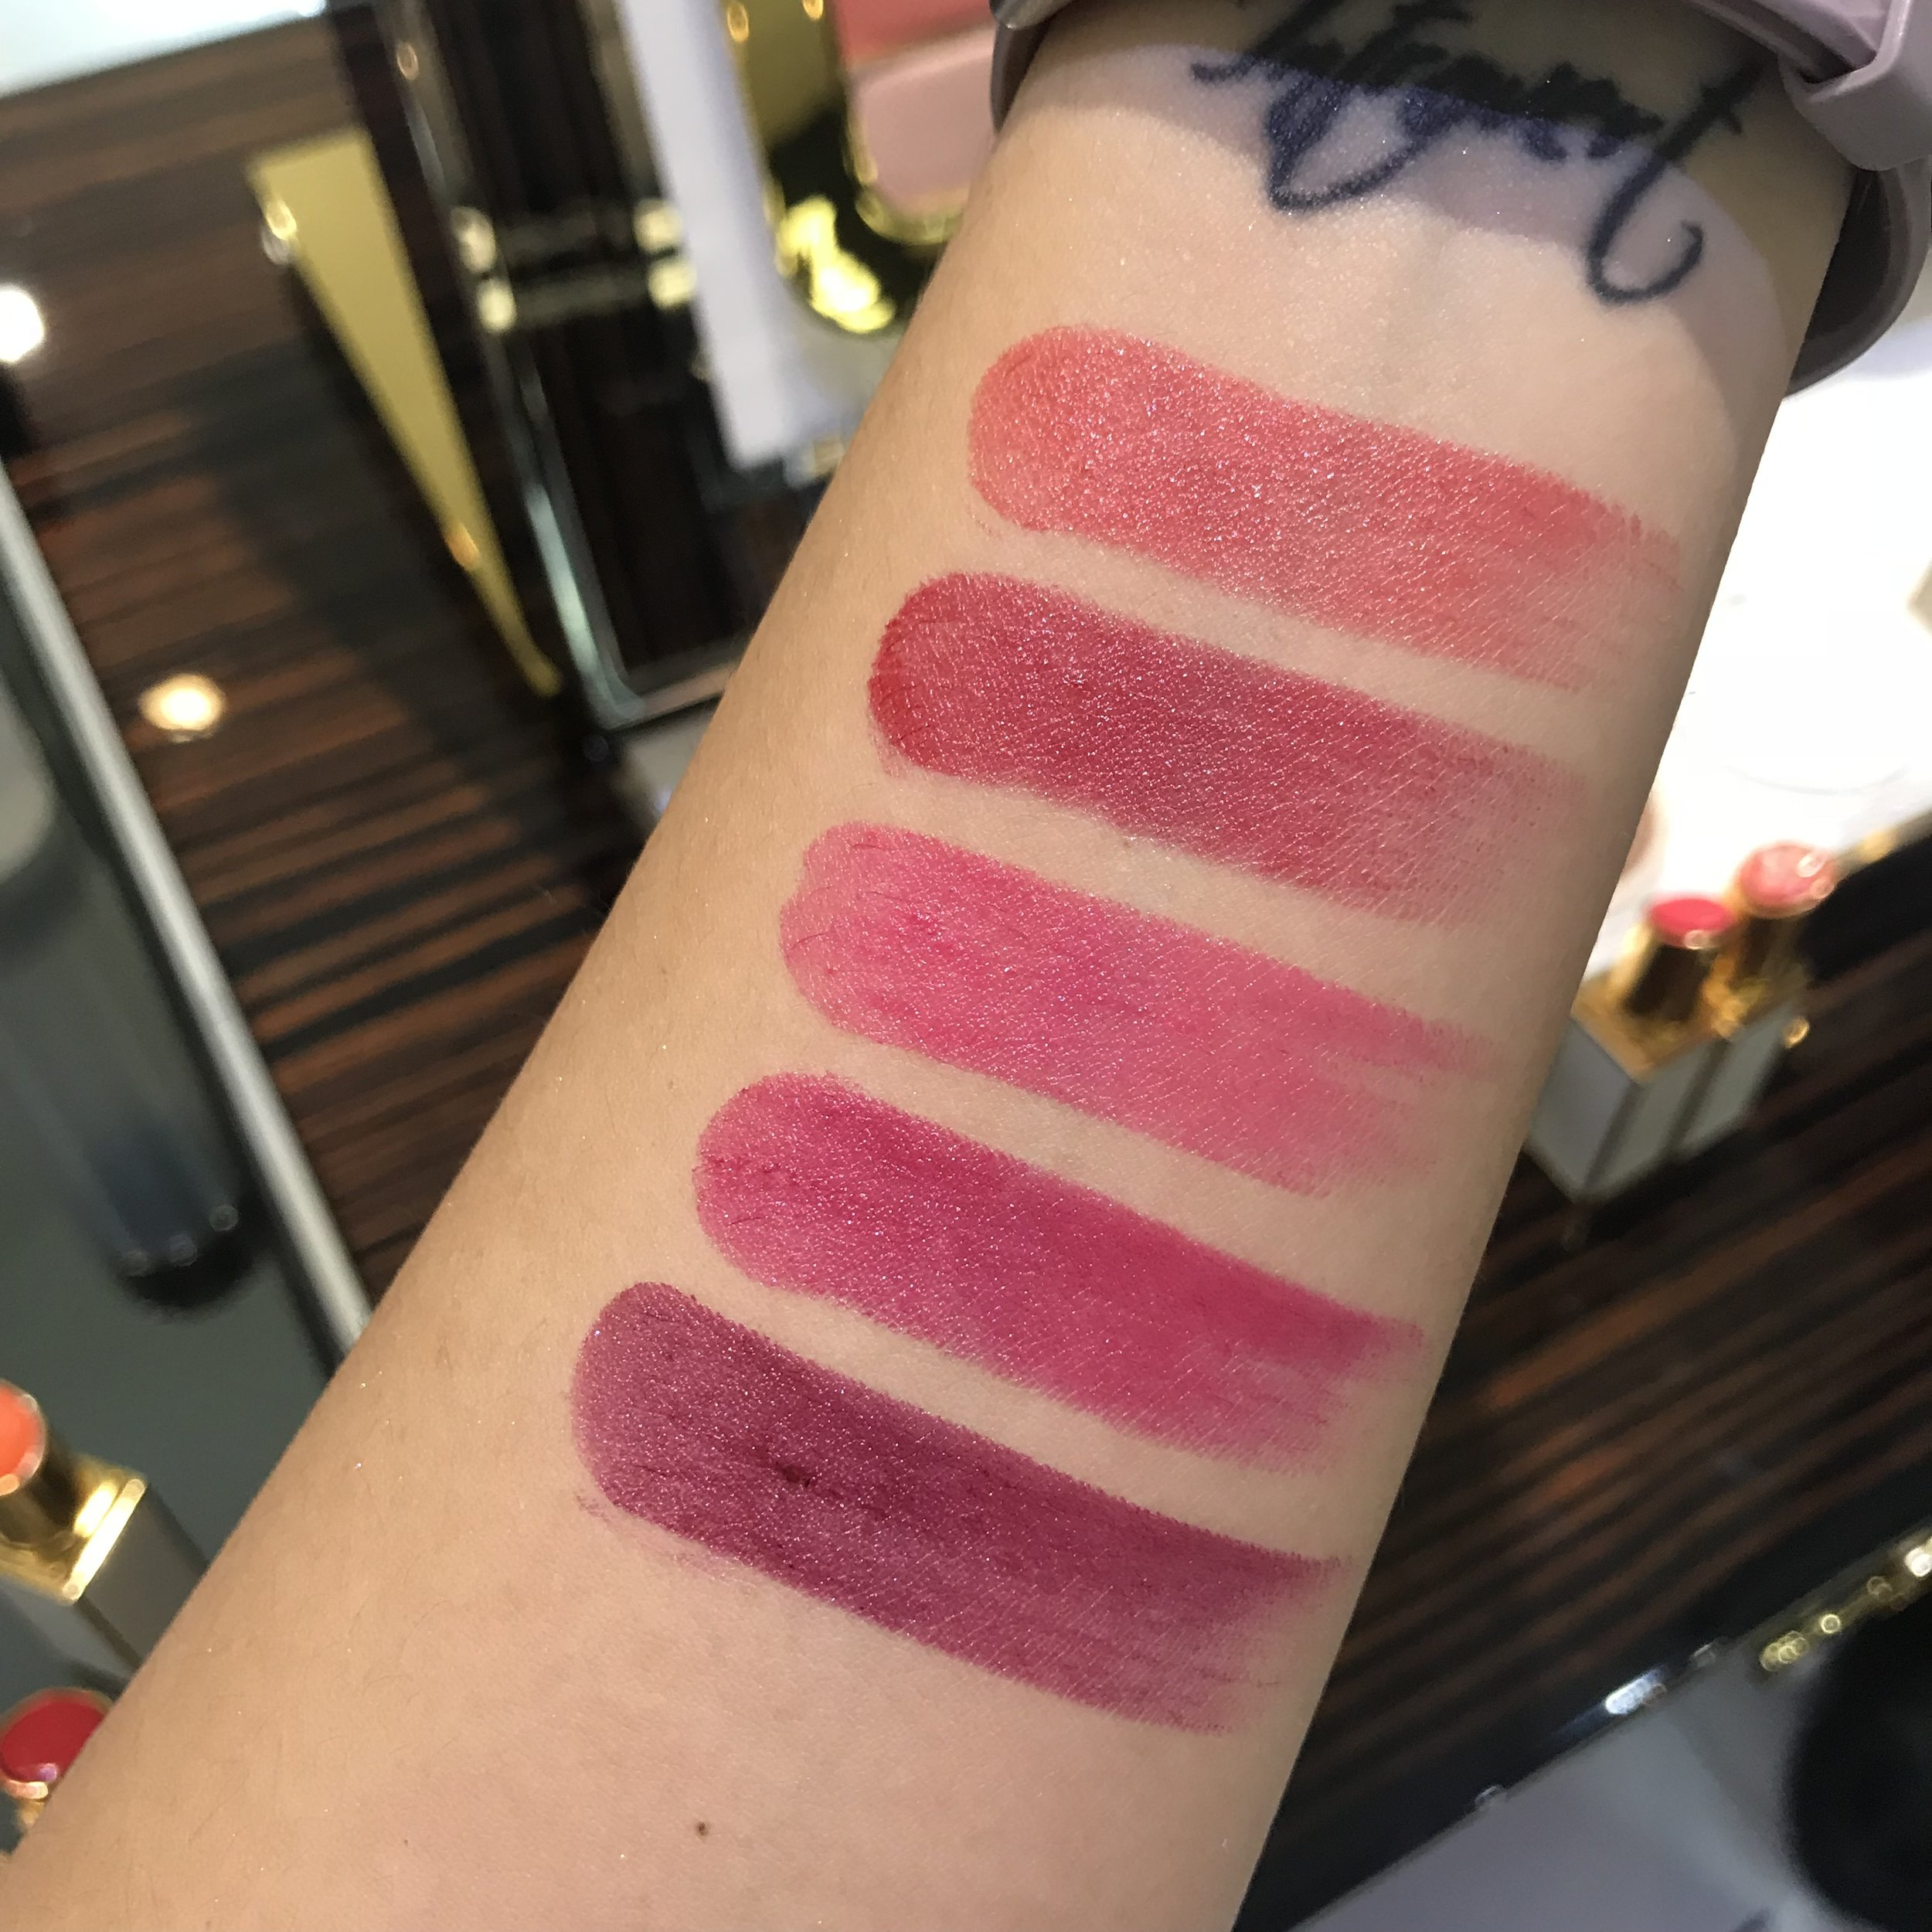 Tomford Ultra Shine Lip color swatches  Willful  Indulgent  Ravenous  Raptotous  Decadent